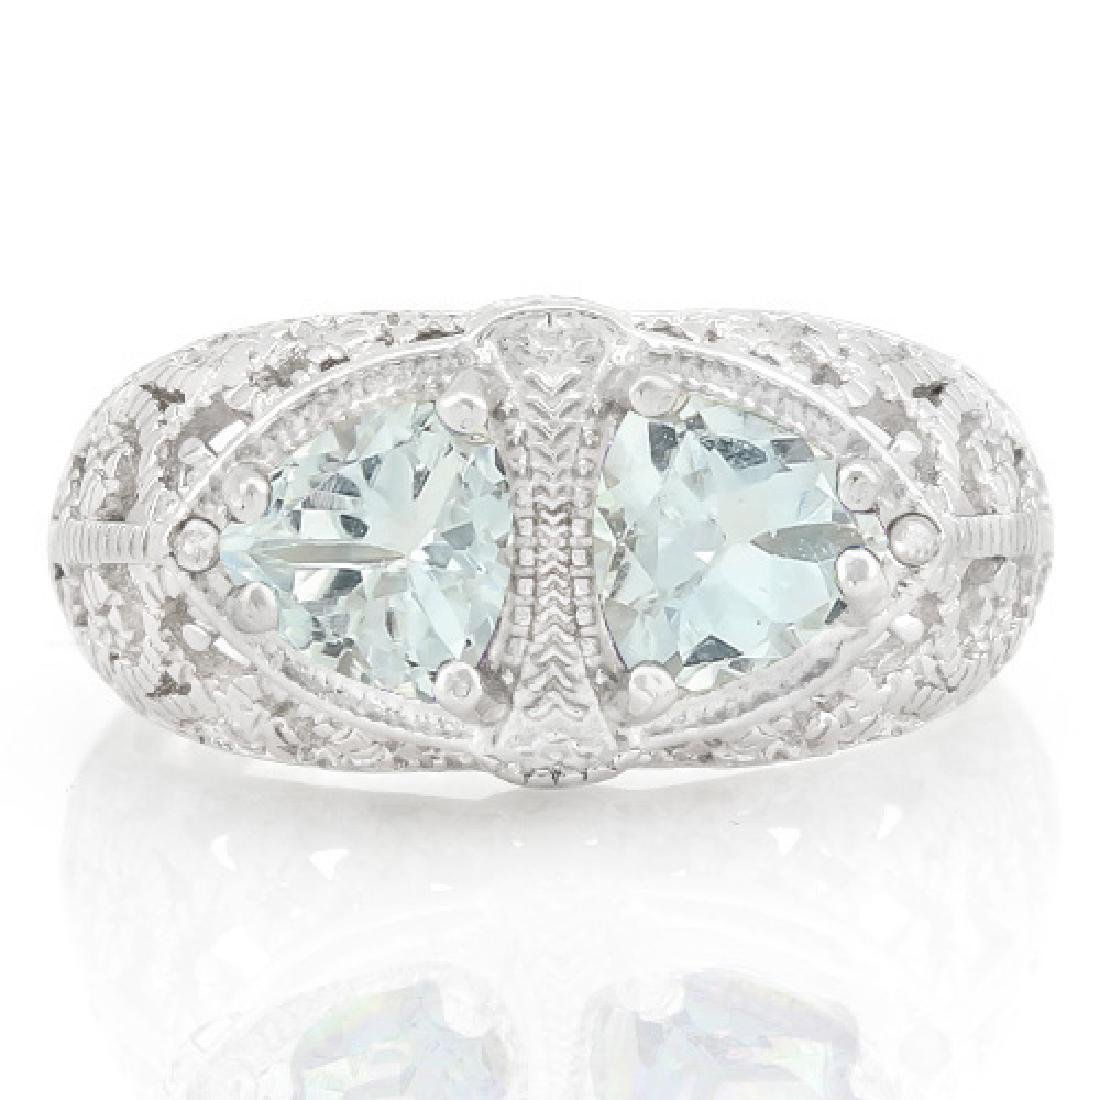 1 1/3 CARAT AQUAMARINES & GENUINE DIAMONDS 925 STERLING